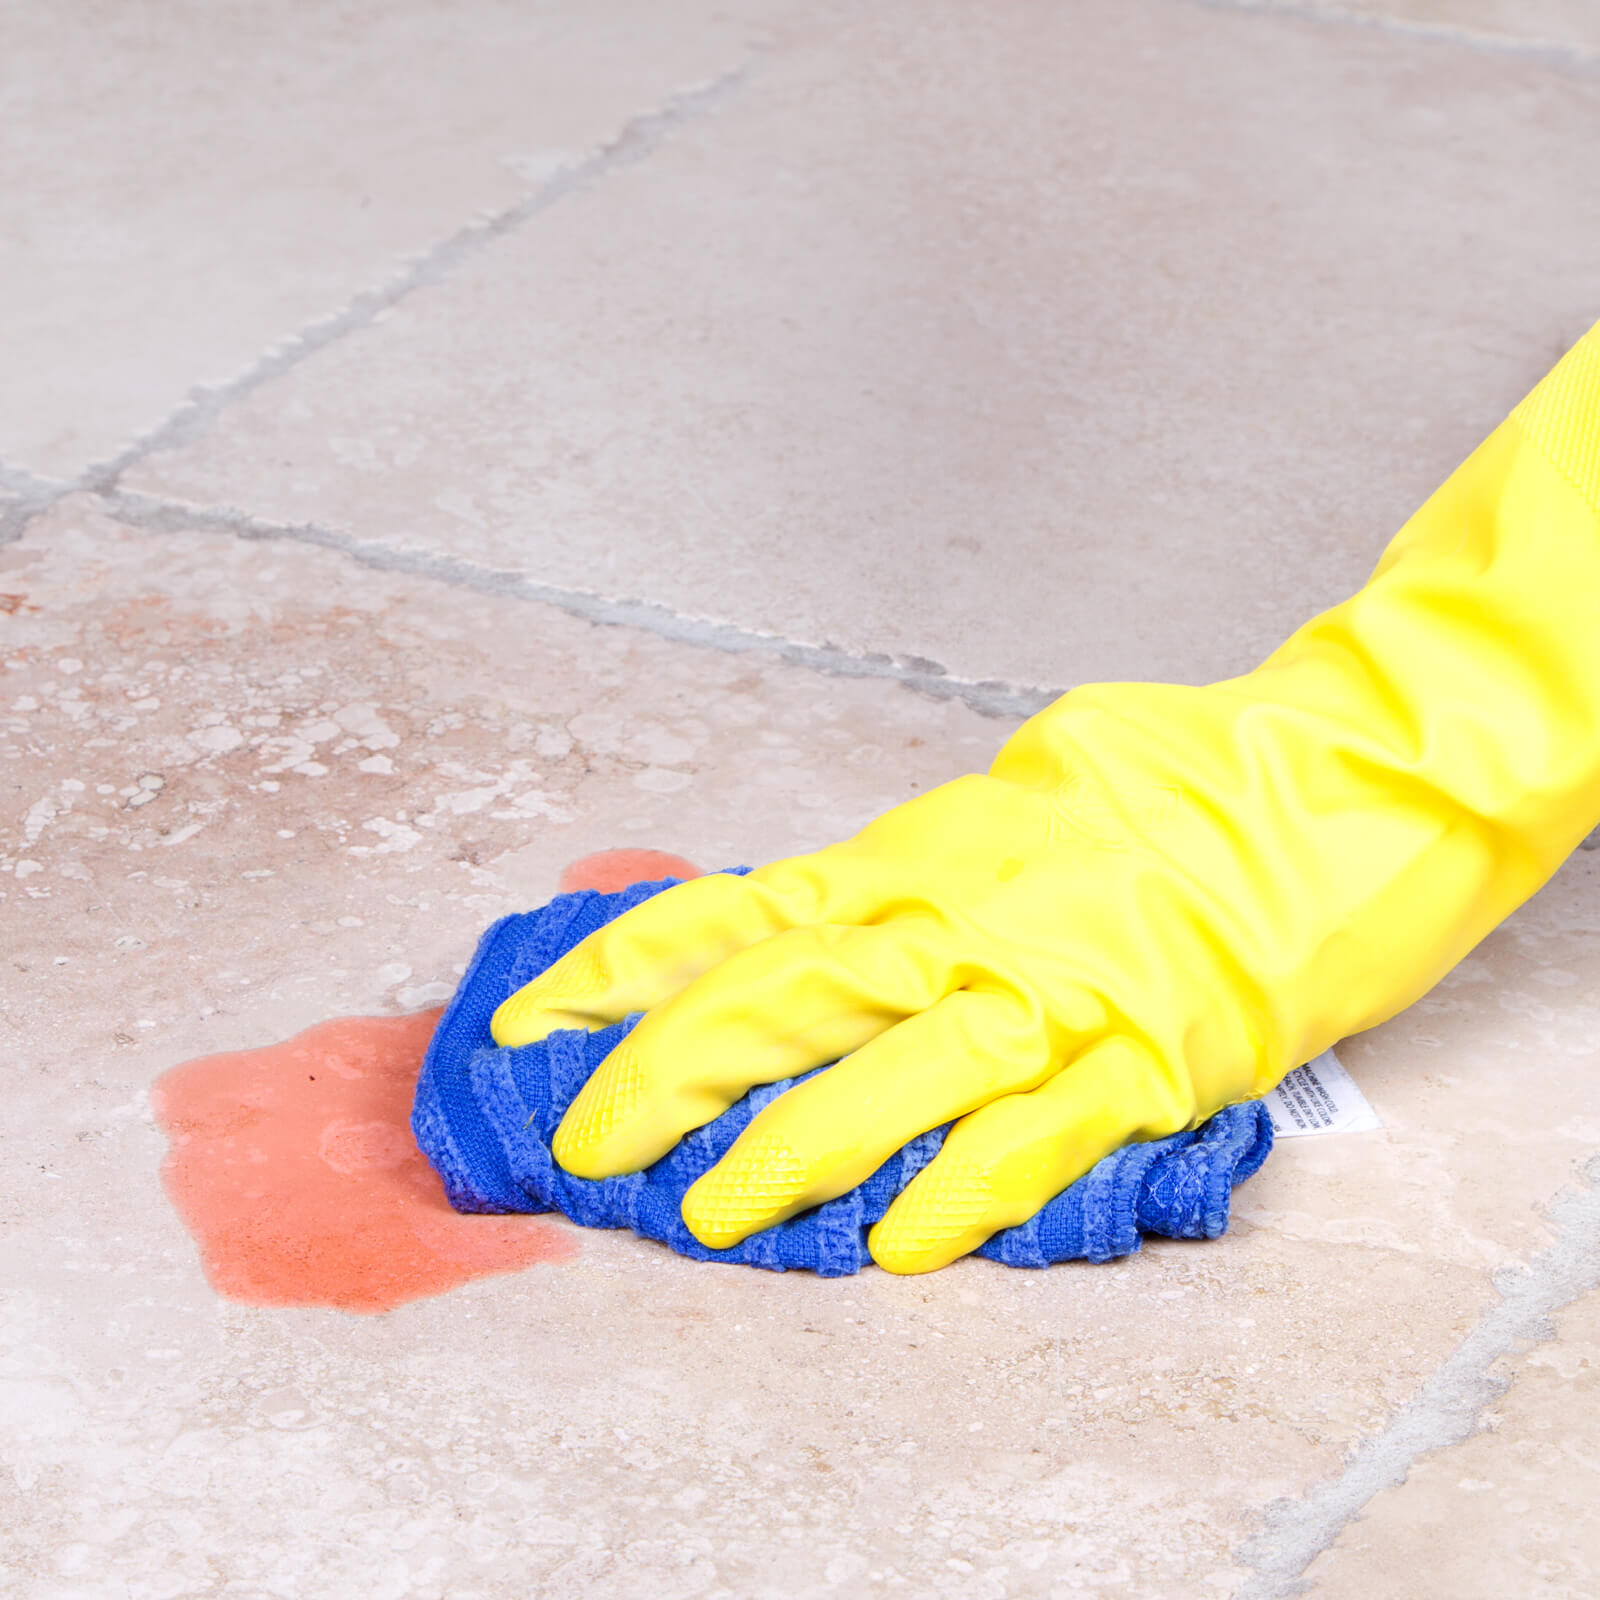 cleaning spill from tile | Independent Floor Covering